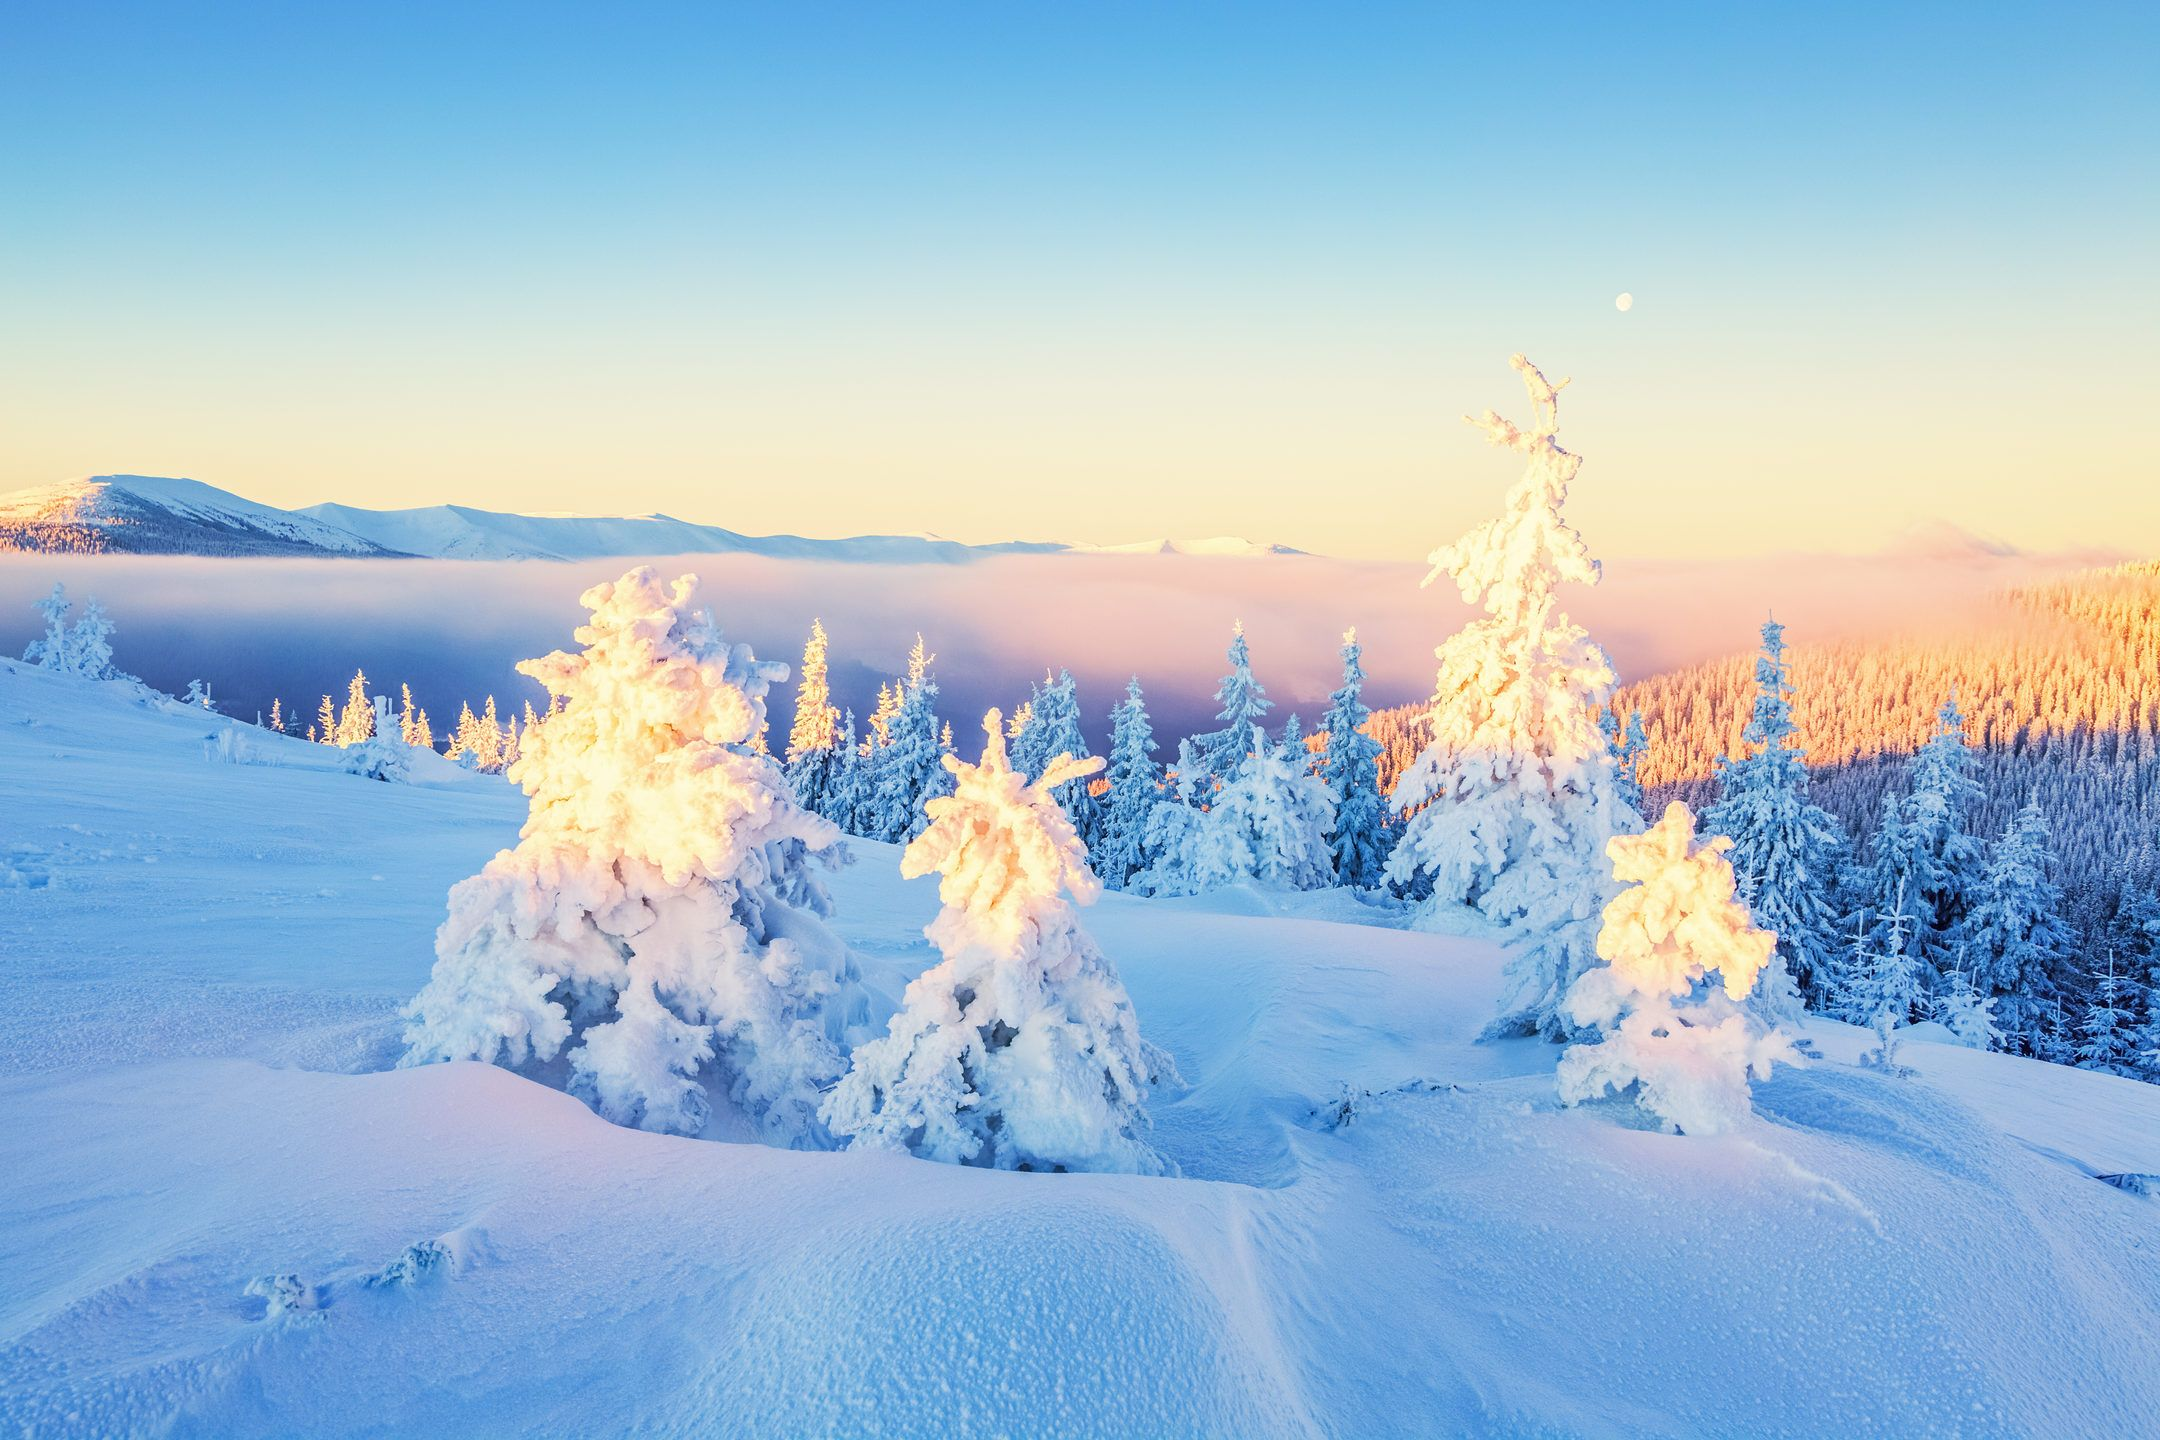 Snow Covering Mountain And Field Winter Theme Hd Wallpaper